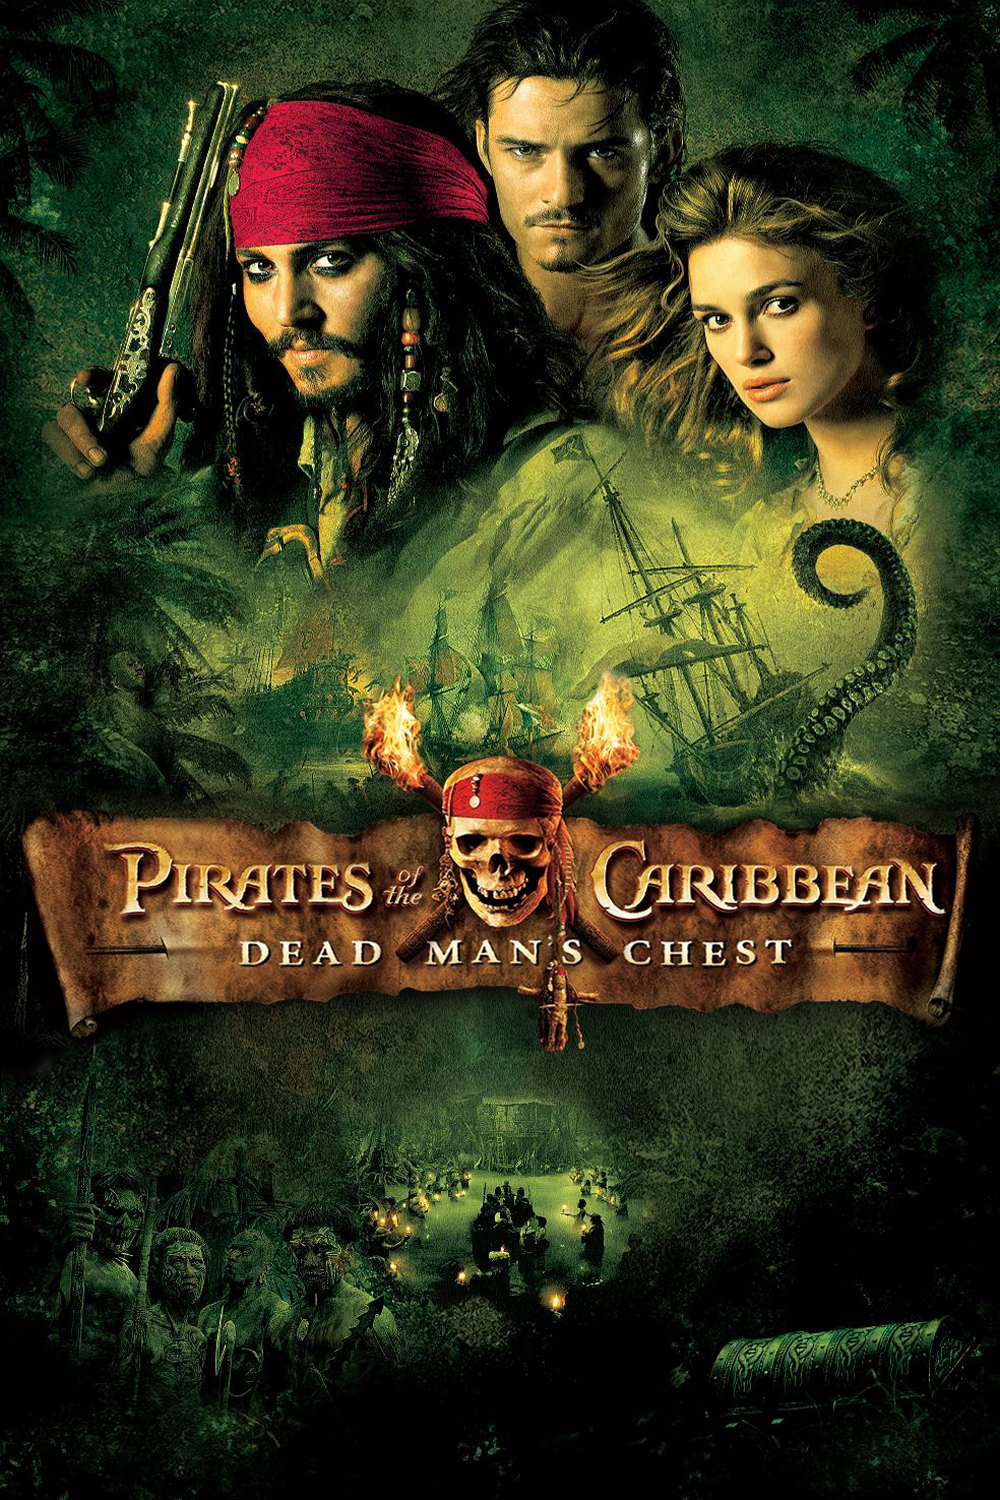 pirates of the caribbean dead man chest essay Pirates of the caribbean: dead man's chest is a 2006 american fantasy swashbuckler film, the second installment of the pirates of the caribbean film series and the.